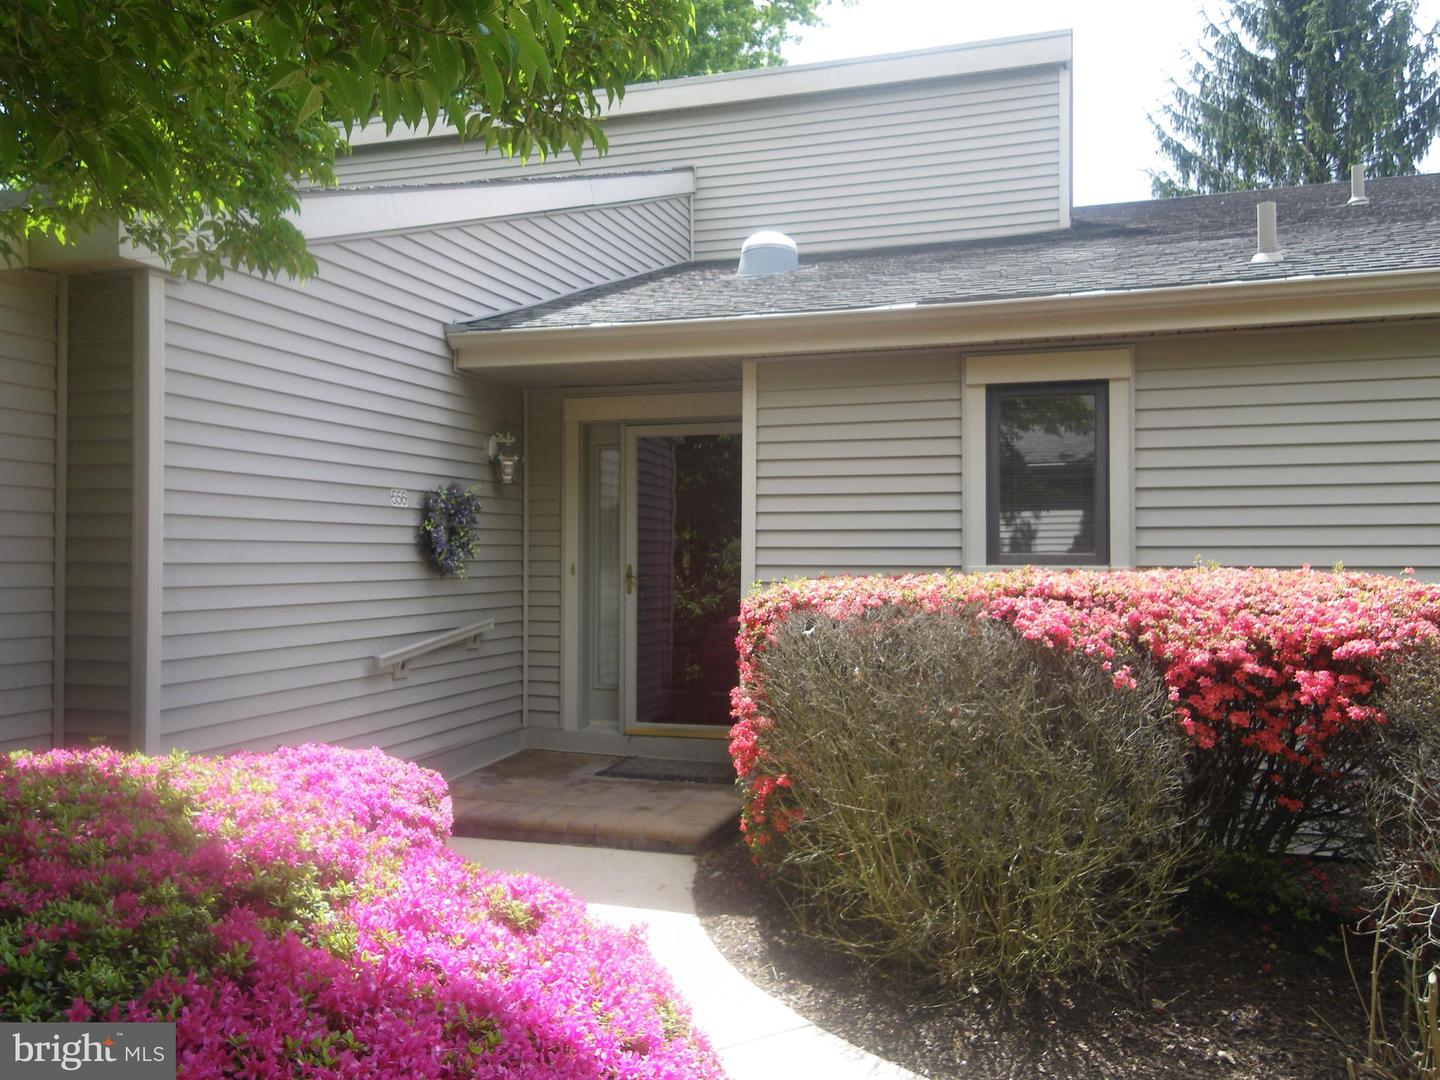 556 Franklin Way West Chester, PA 19380